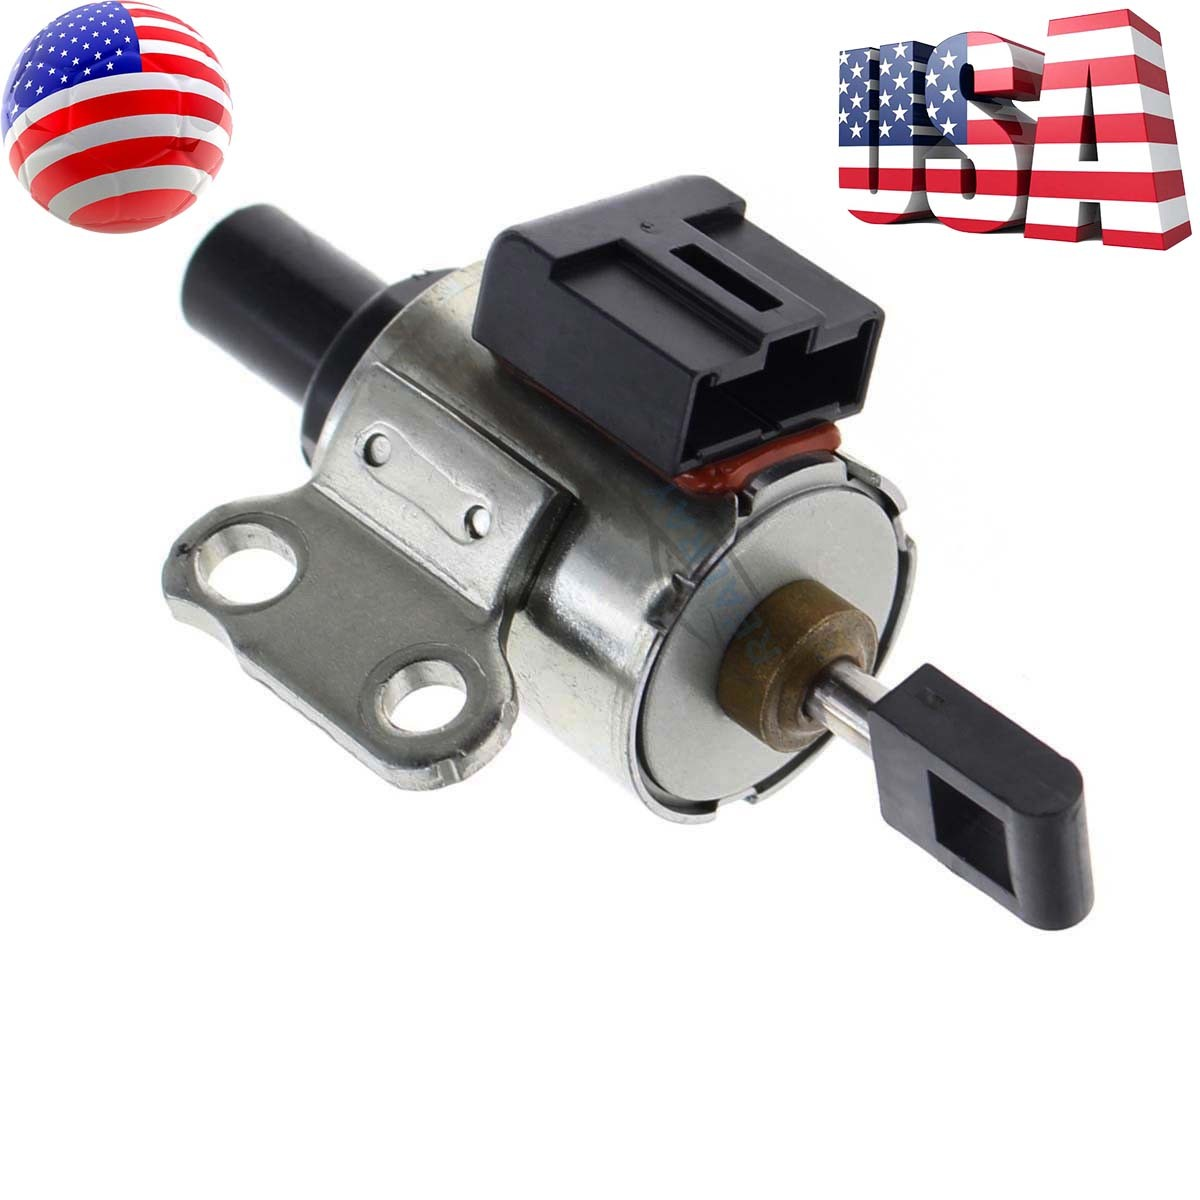 fit volkswagen transpartsnow steering for passat new solenoid pump dodge inspirational of pack jetta gallery power free oem parts beautiful golf acura